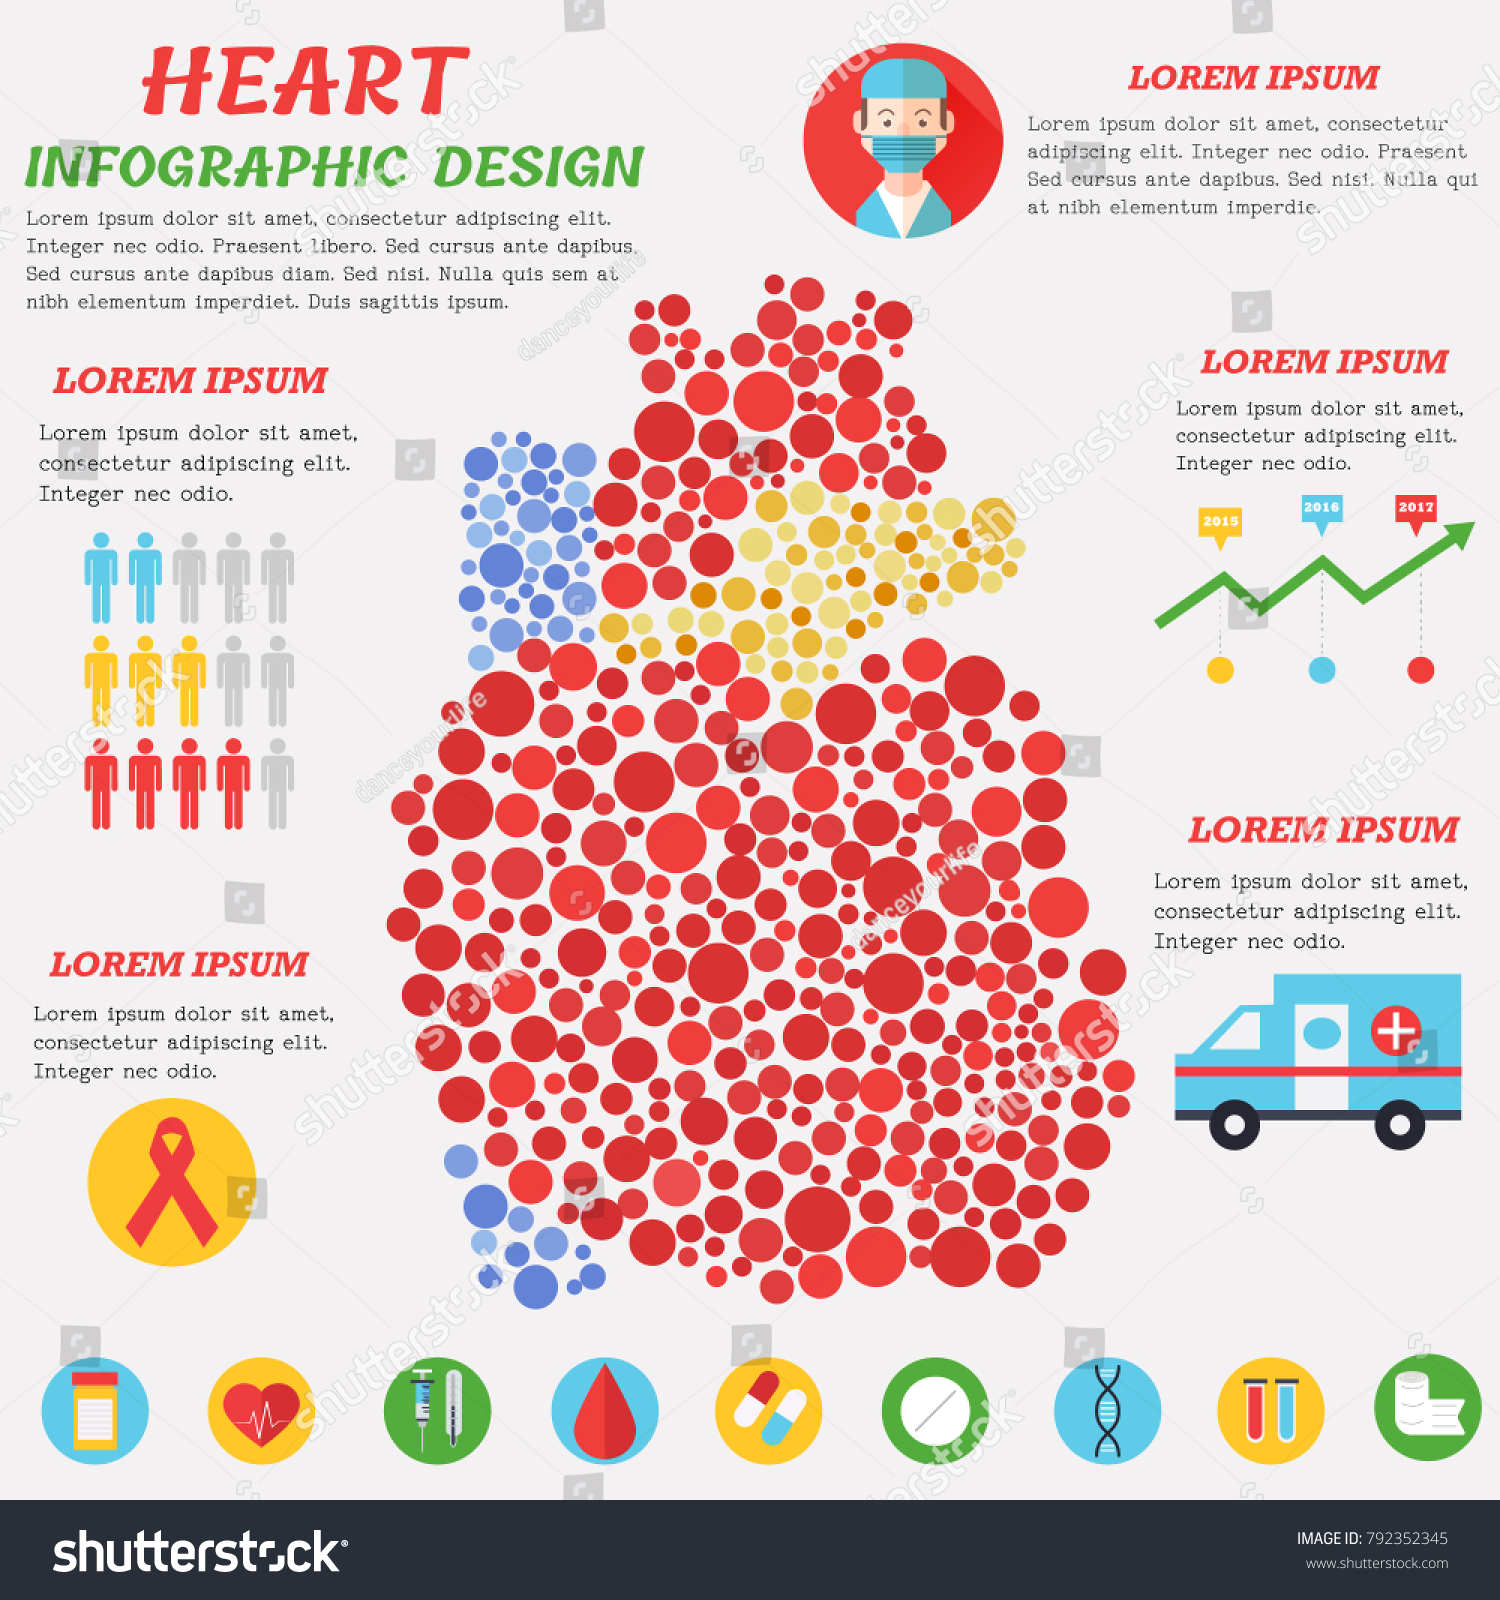 Text symbols heart image collections symbol and sign ideas texting hearts symbols gallery symbol and sign ideas heart infographic poster heart symbols text stock illustration biocorpaavc